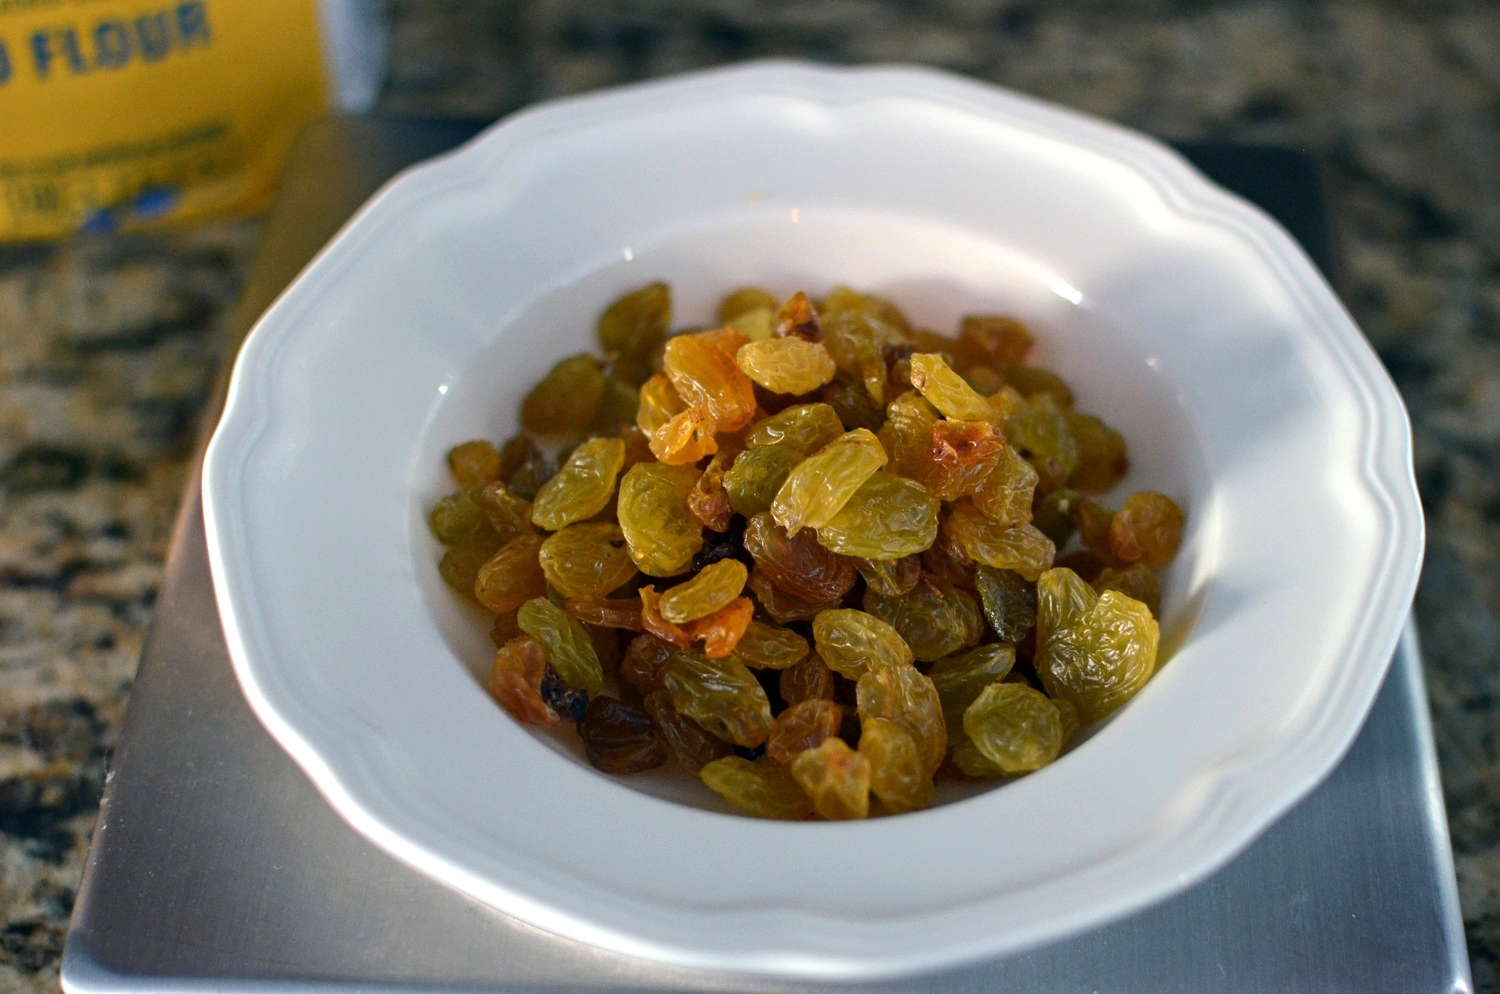 Don't be alarmed that my golden raisins look a little green - it was the light in the room.